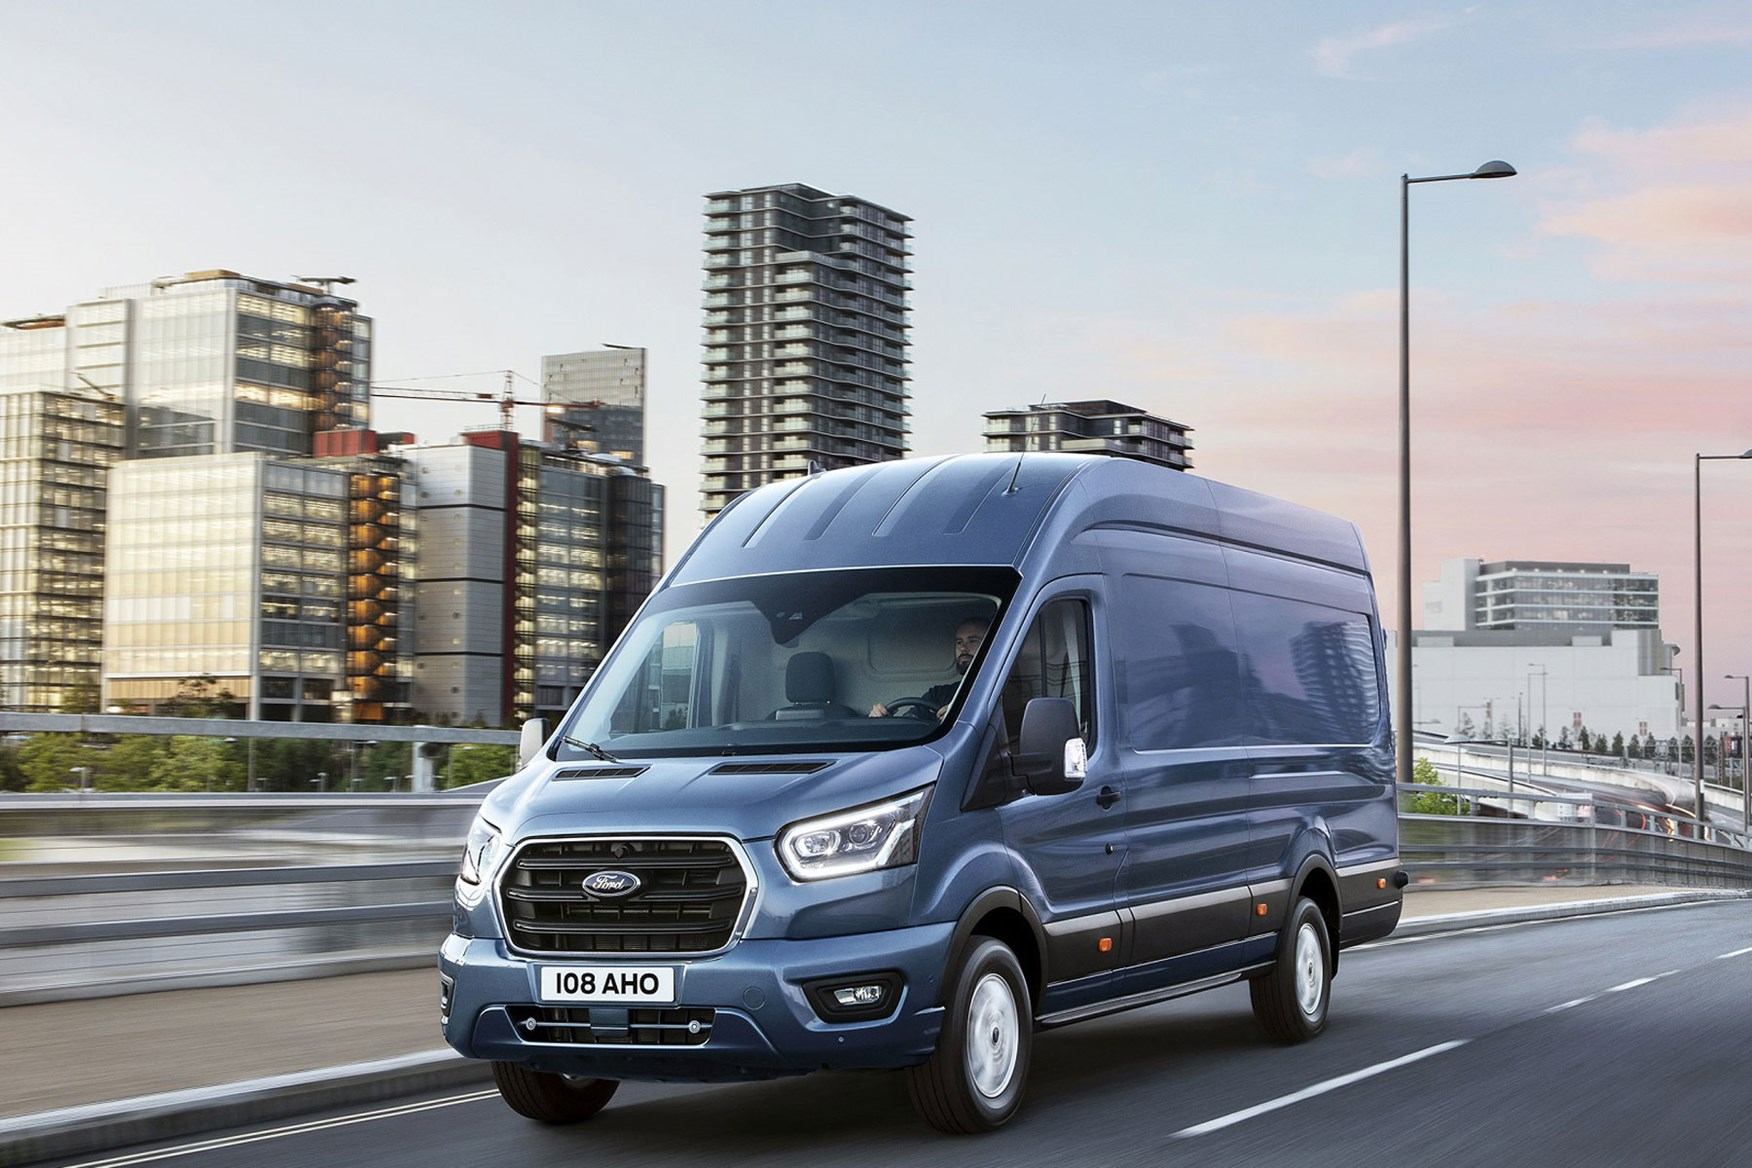 new 2019 ford transit facelift latest details from the. Black Bedroom Furniture Sets. Home Design Ideas